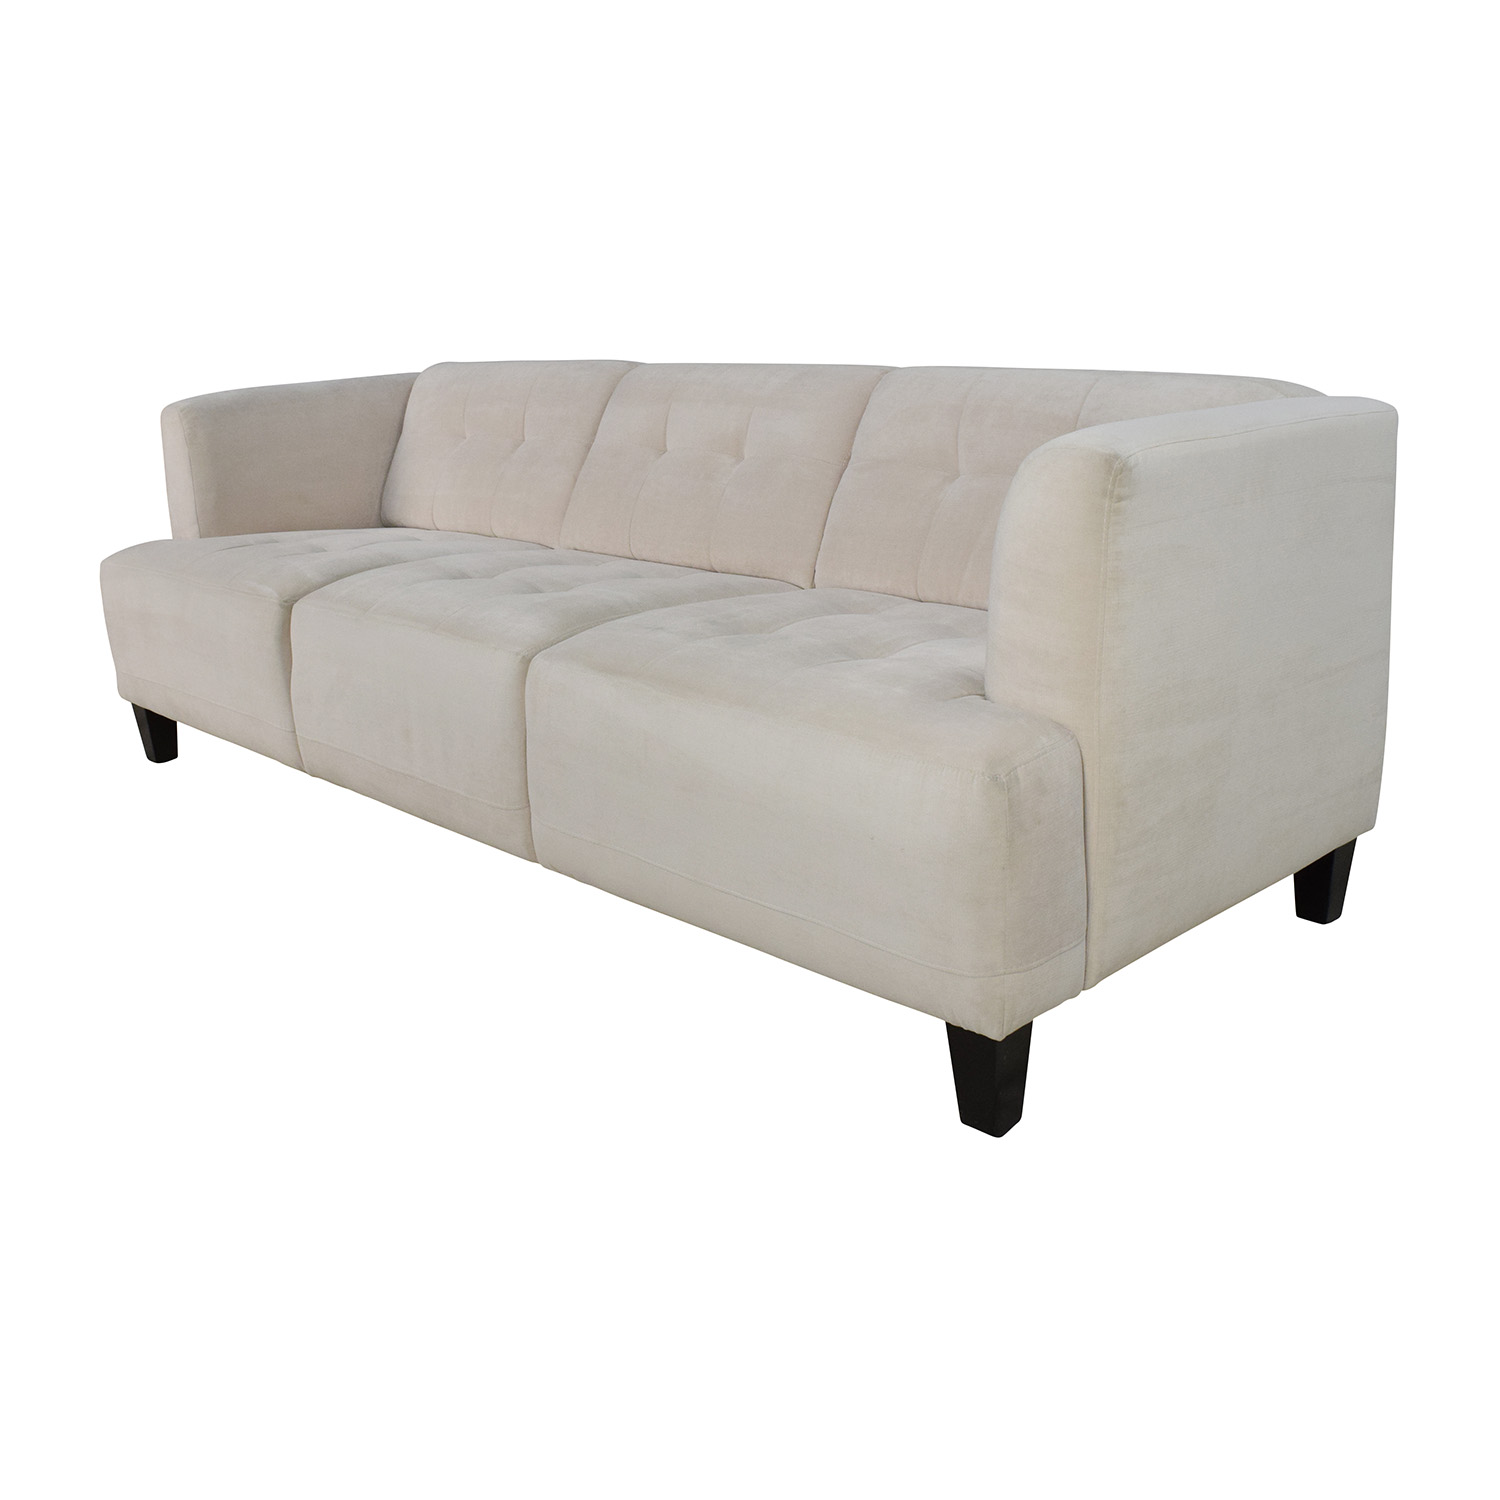 Alessia sofa bed refil sofa for Alessia leather chaise